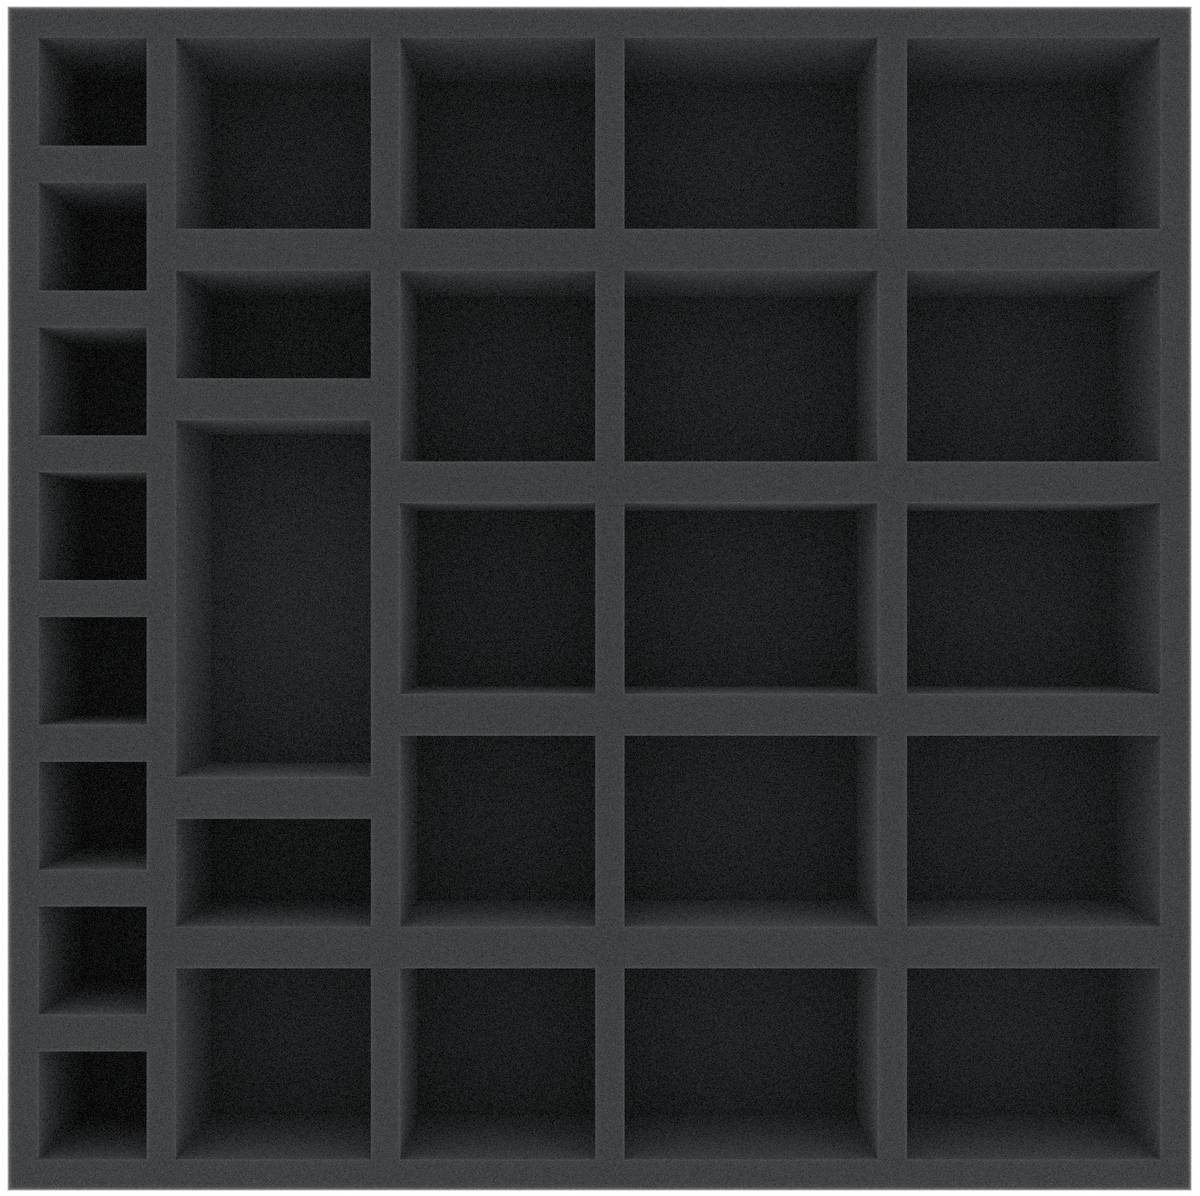 AFEN051BO 285 mm x 285 mm x 51 mm (2 inches) foam tray for board game boxes